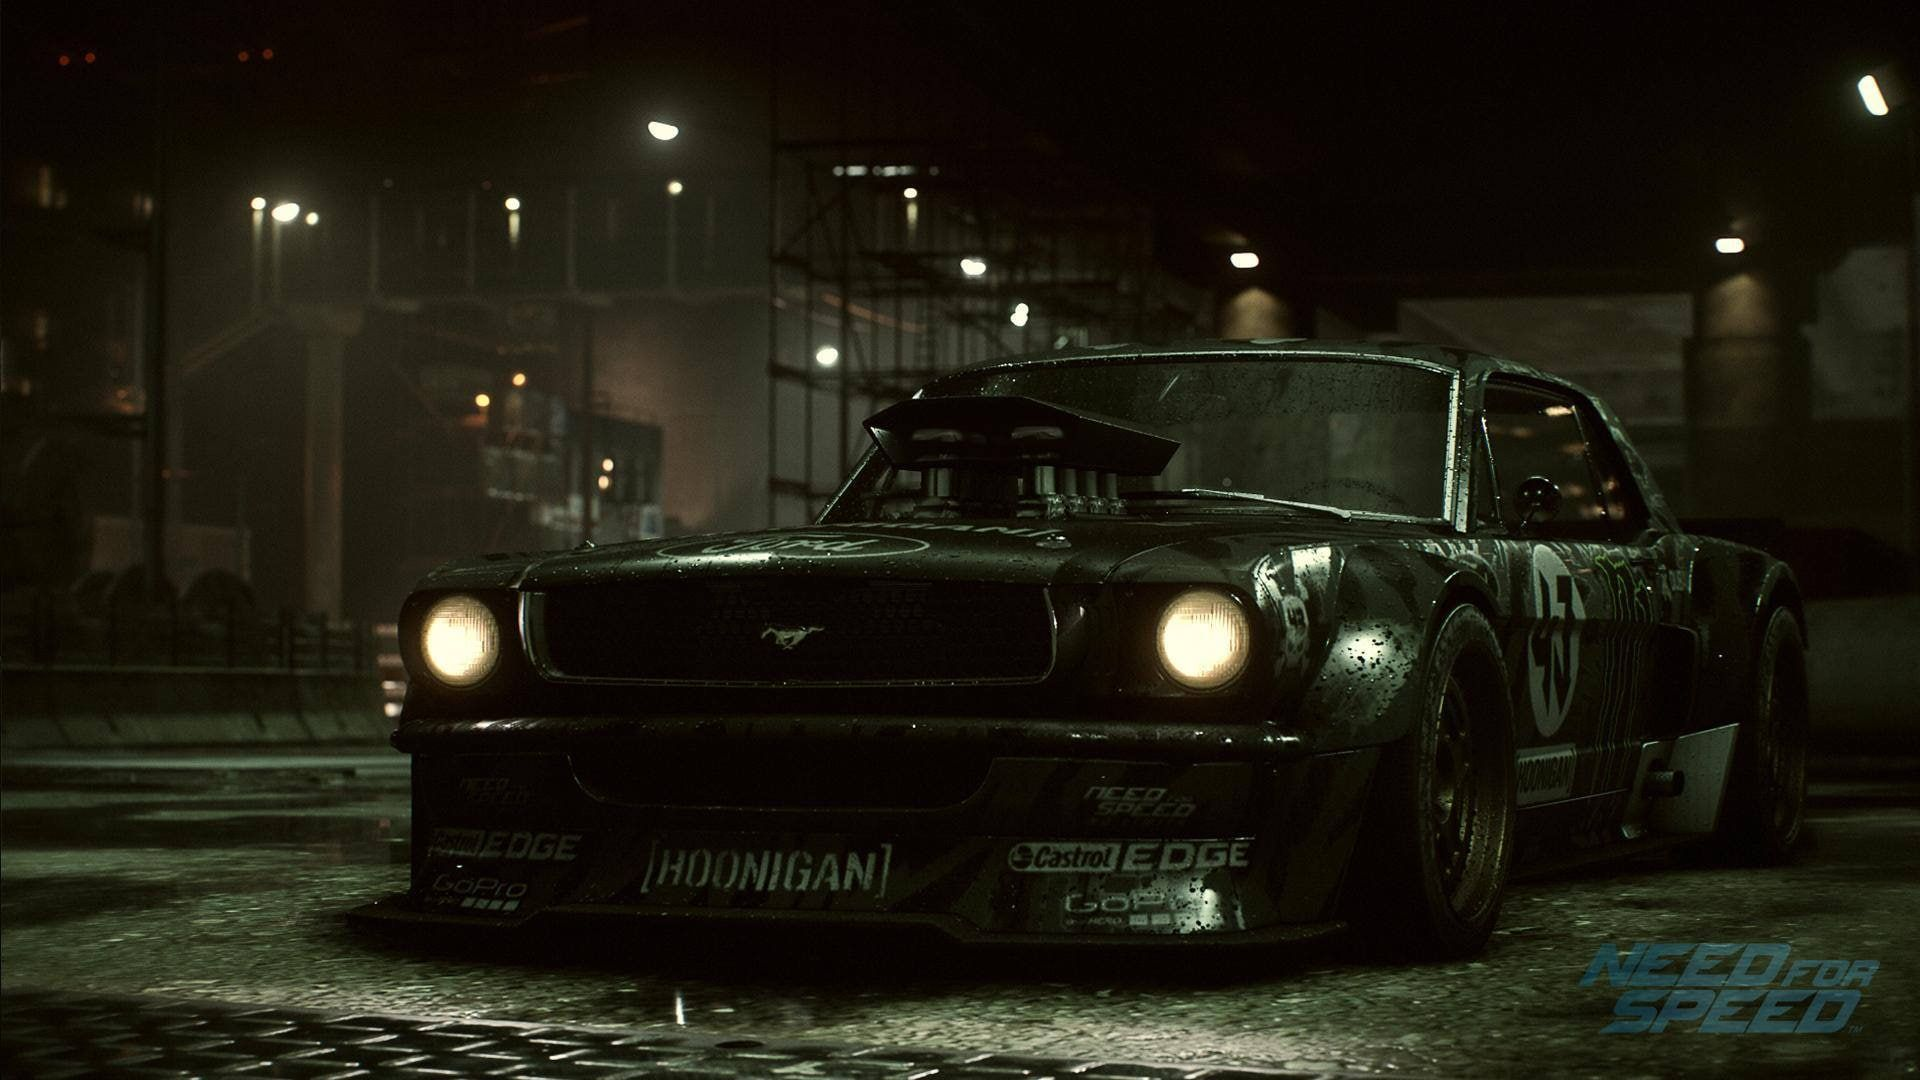 Black Ford Mustang Mustang Ford Need For Speed 1965 Rtr Ken